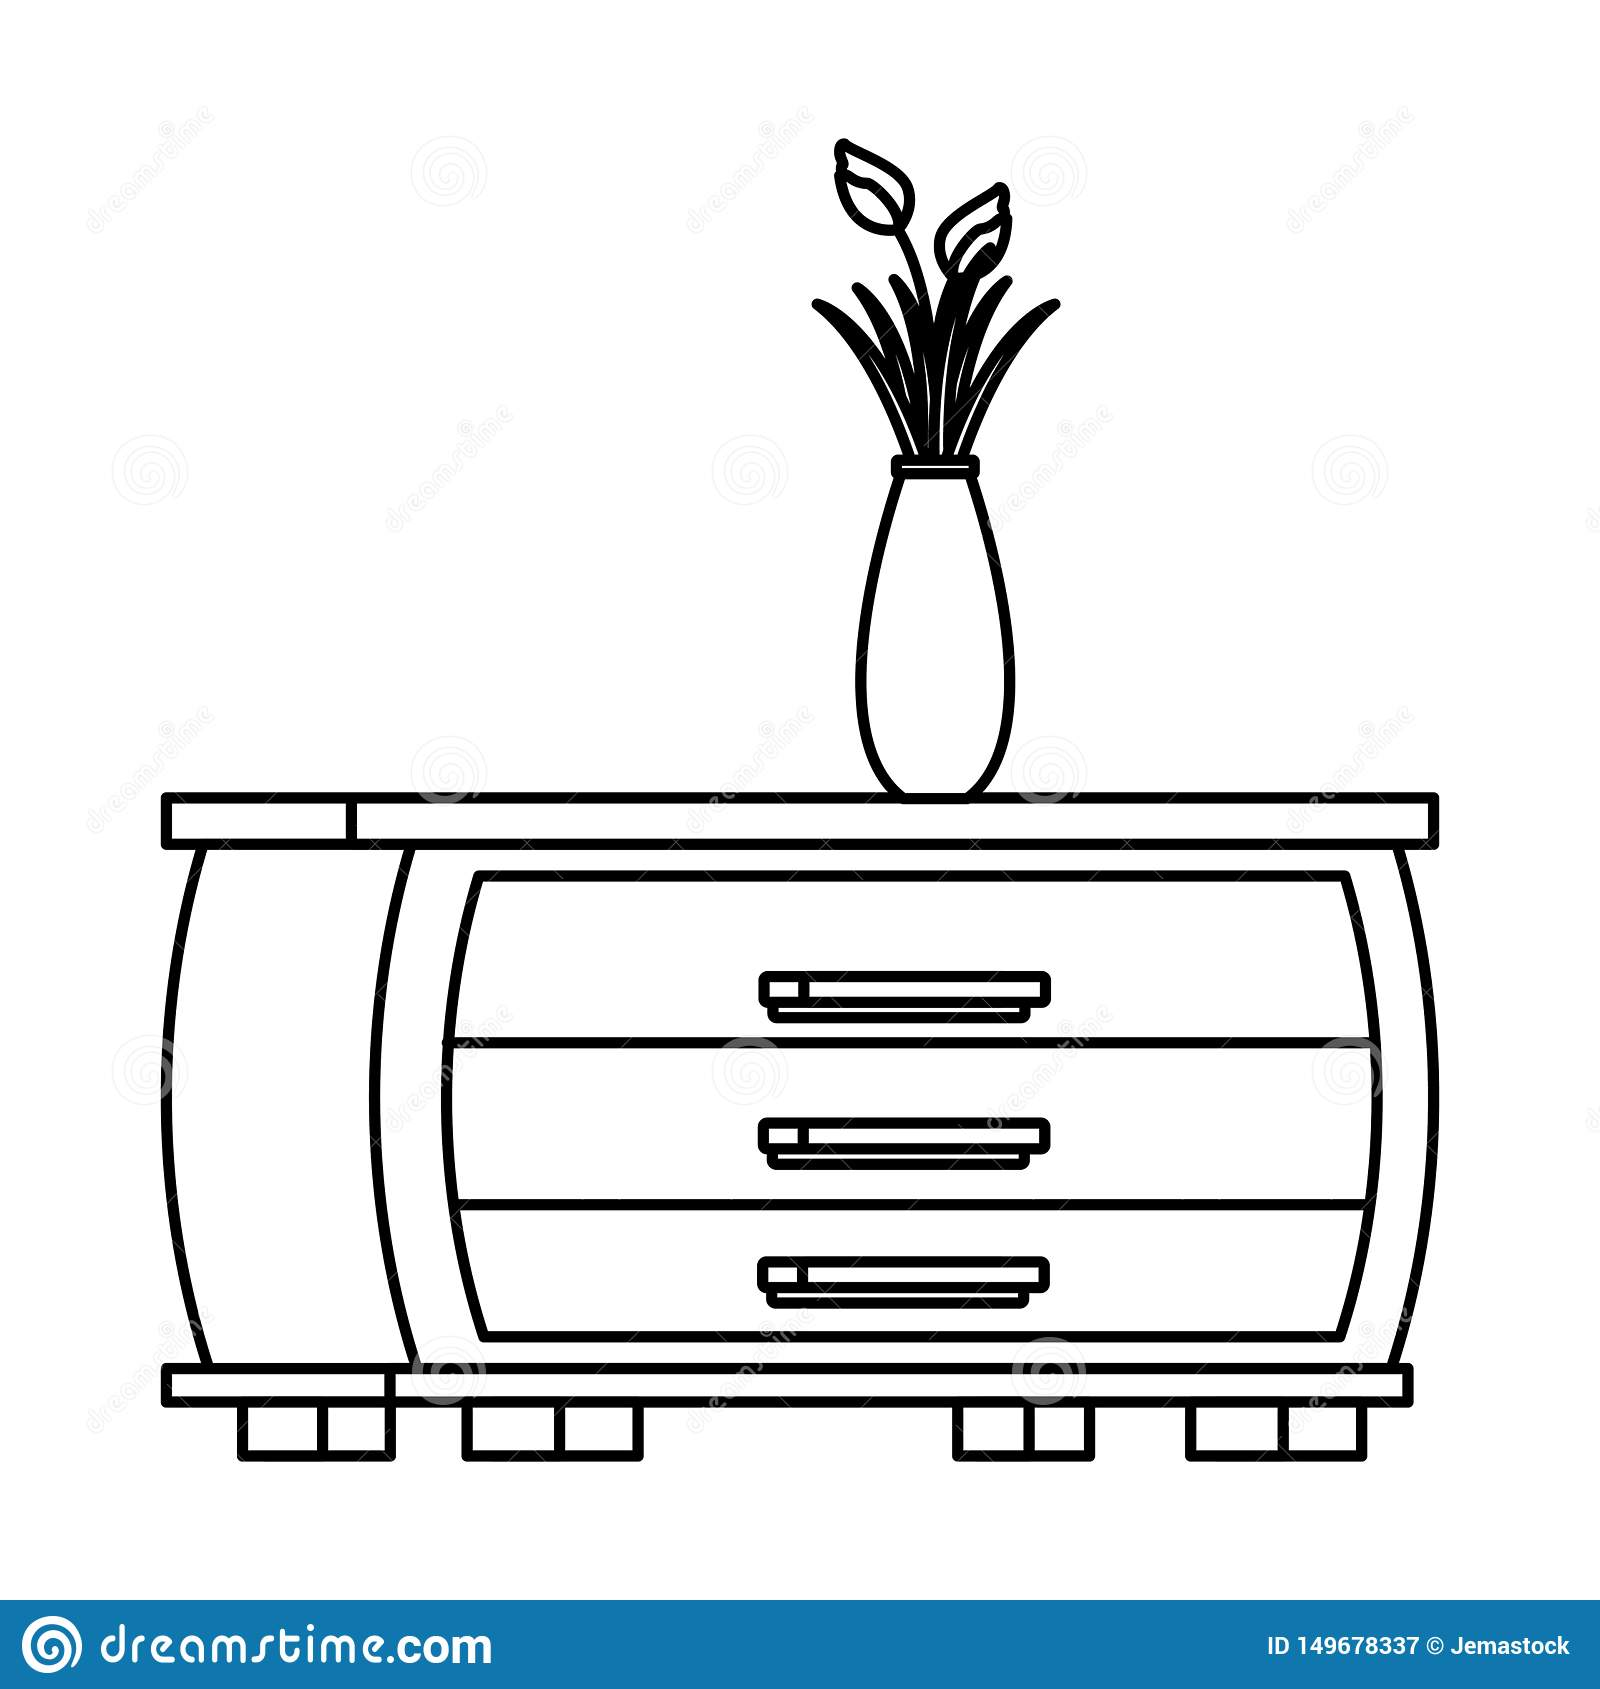 Flower Vase Over A Cupboard Black And White Stock Vector Illustration Of Cartoon Petal 149678337